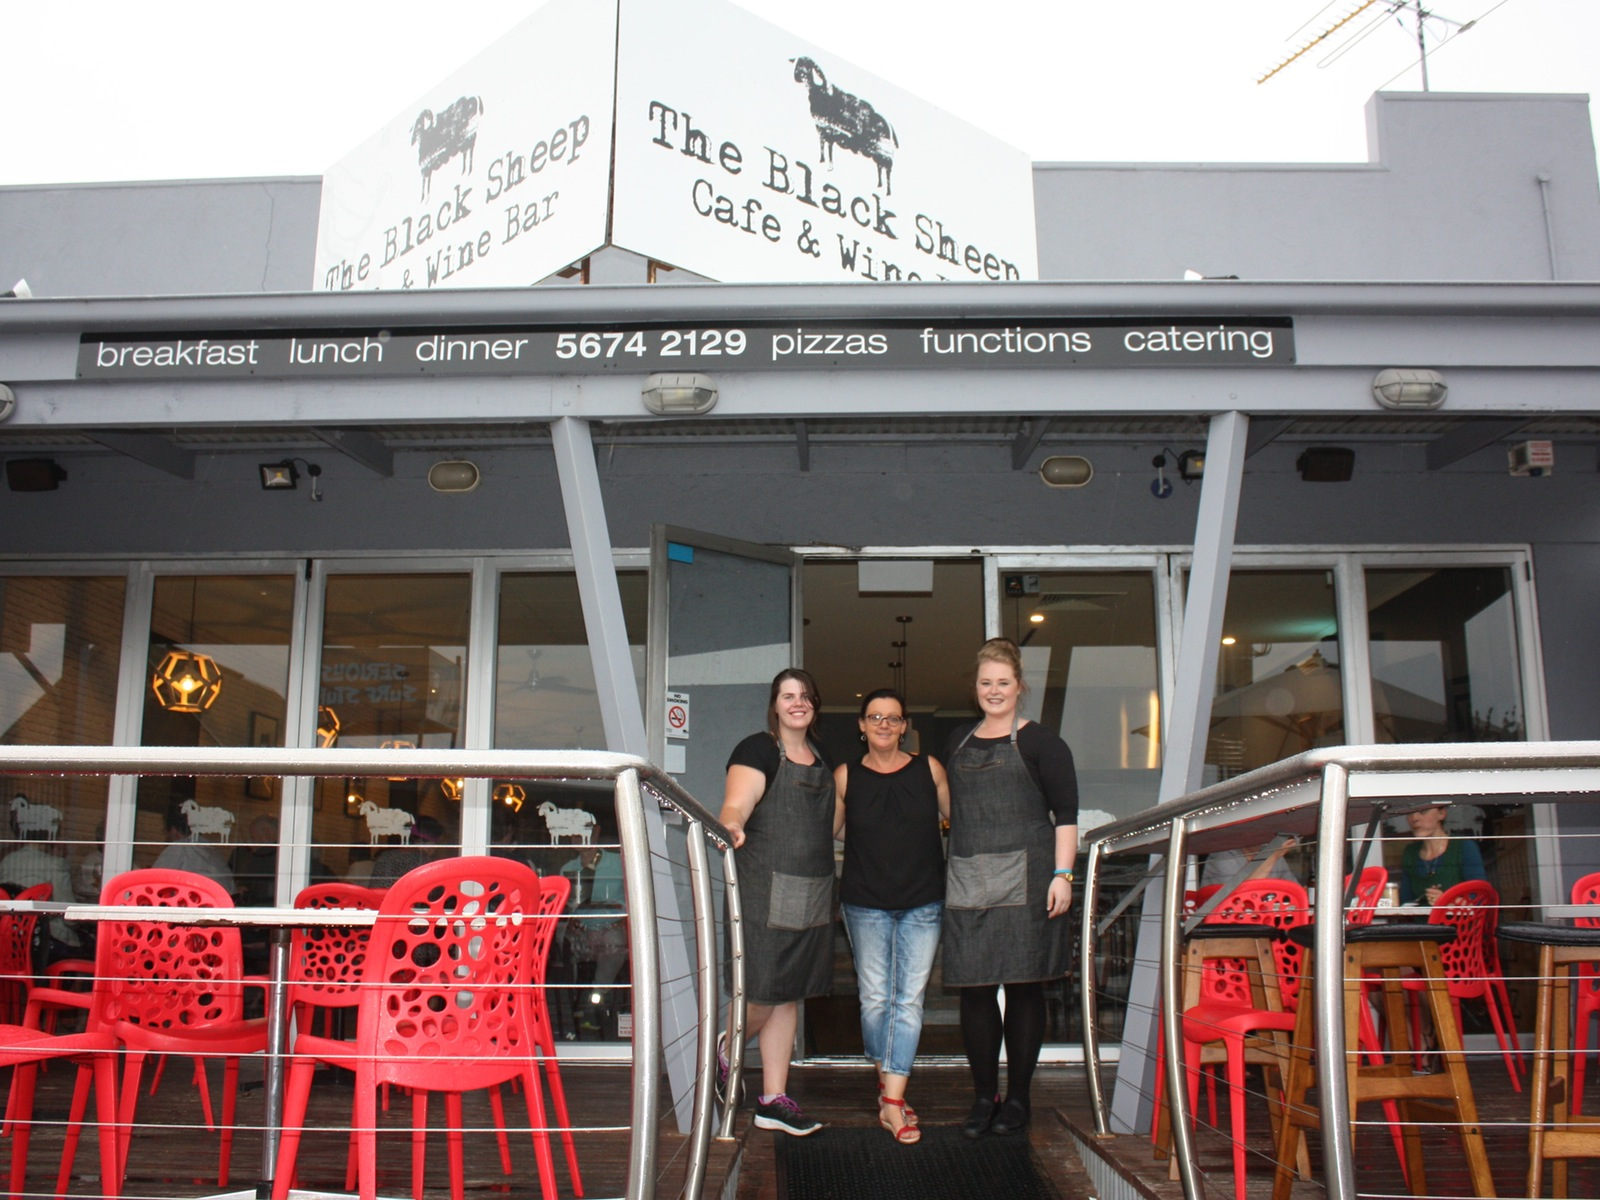 Darlene, Kris and Cassie welcome you the the Black Sheep